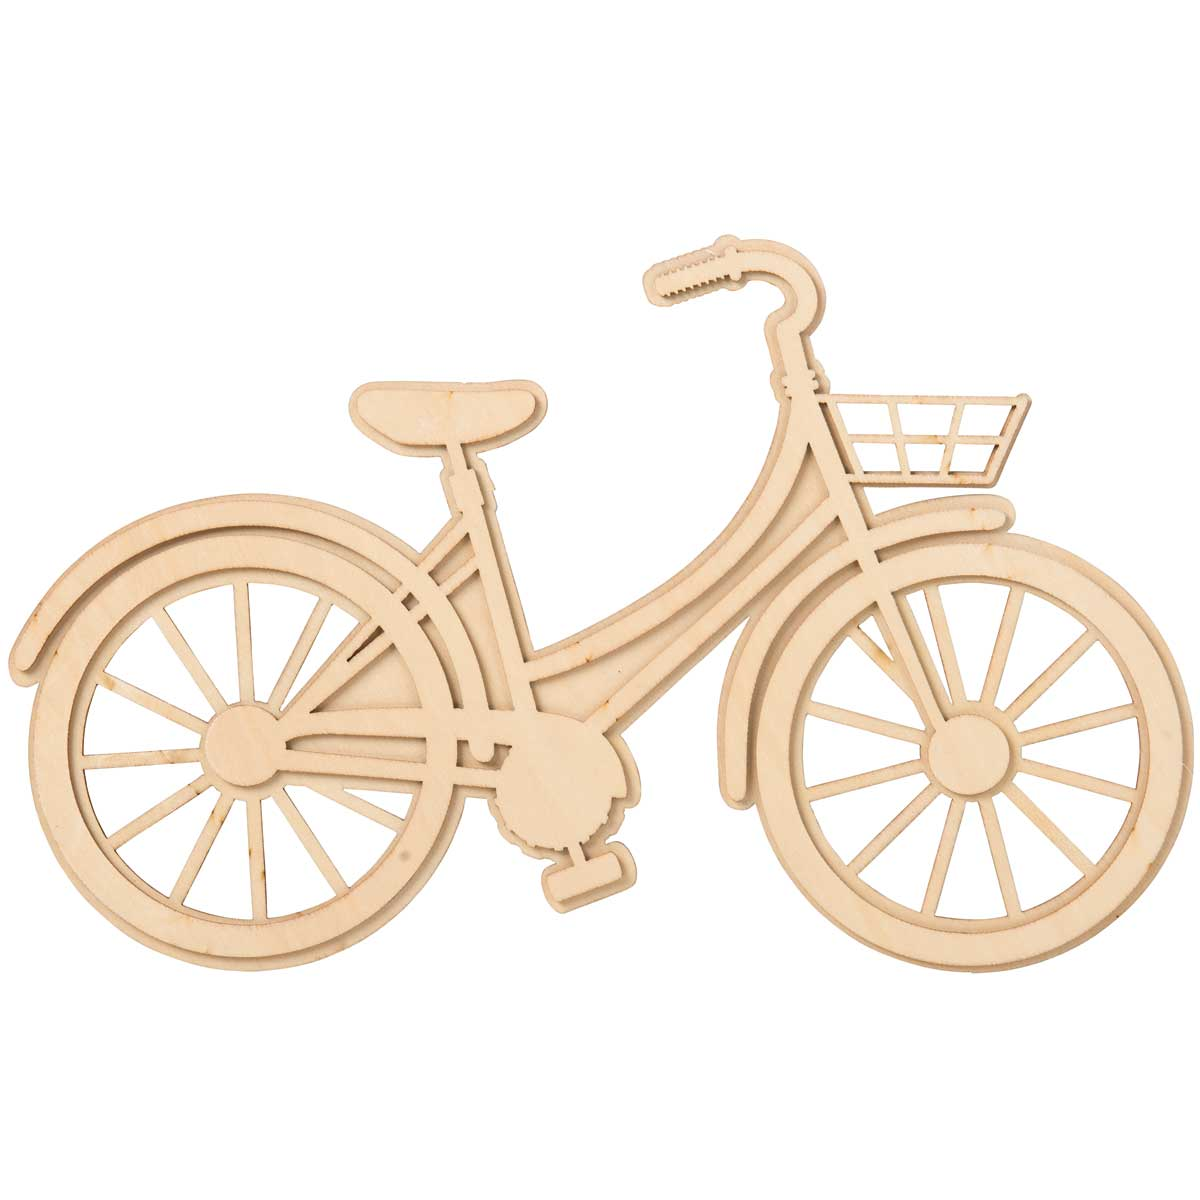 Plaid ® Wood Surfaces - Unpainted Layered Shapes - Bicycle - 59708